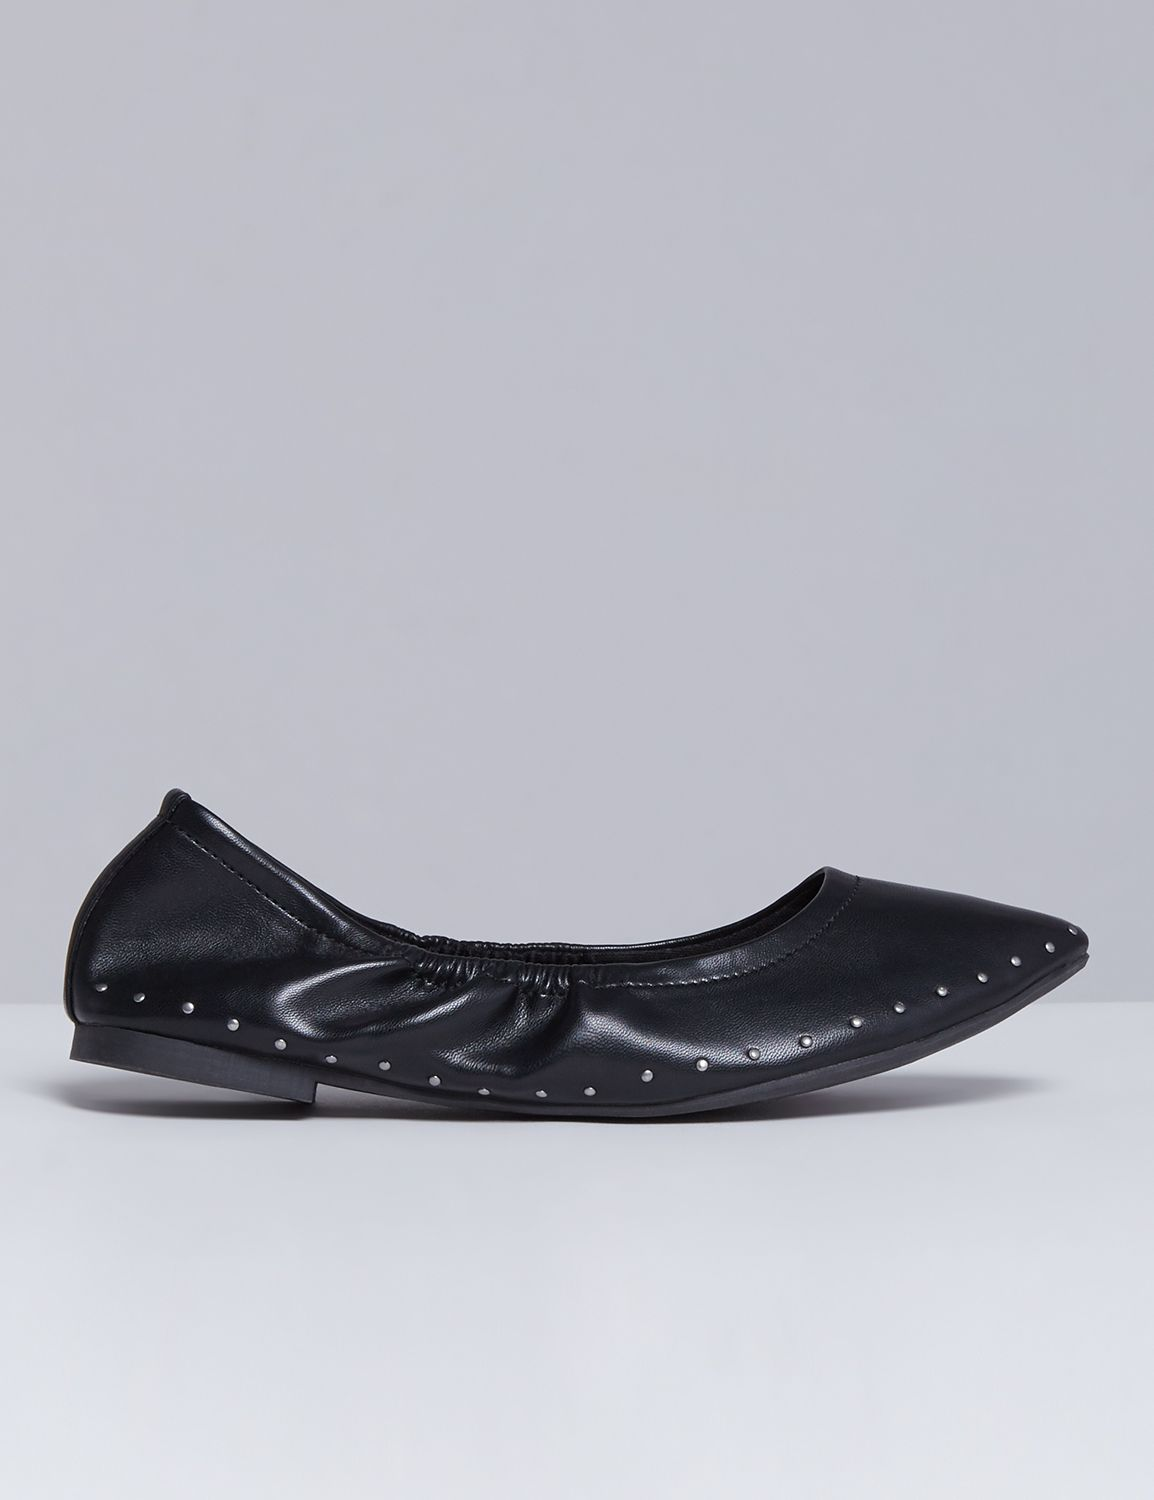 Lane Bryant Womens Studded Pointed-Toe Flat 7W Black